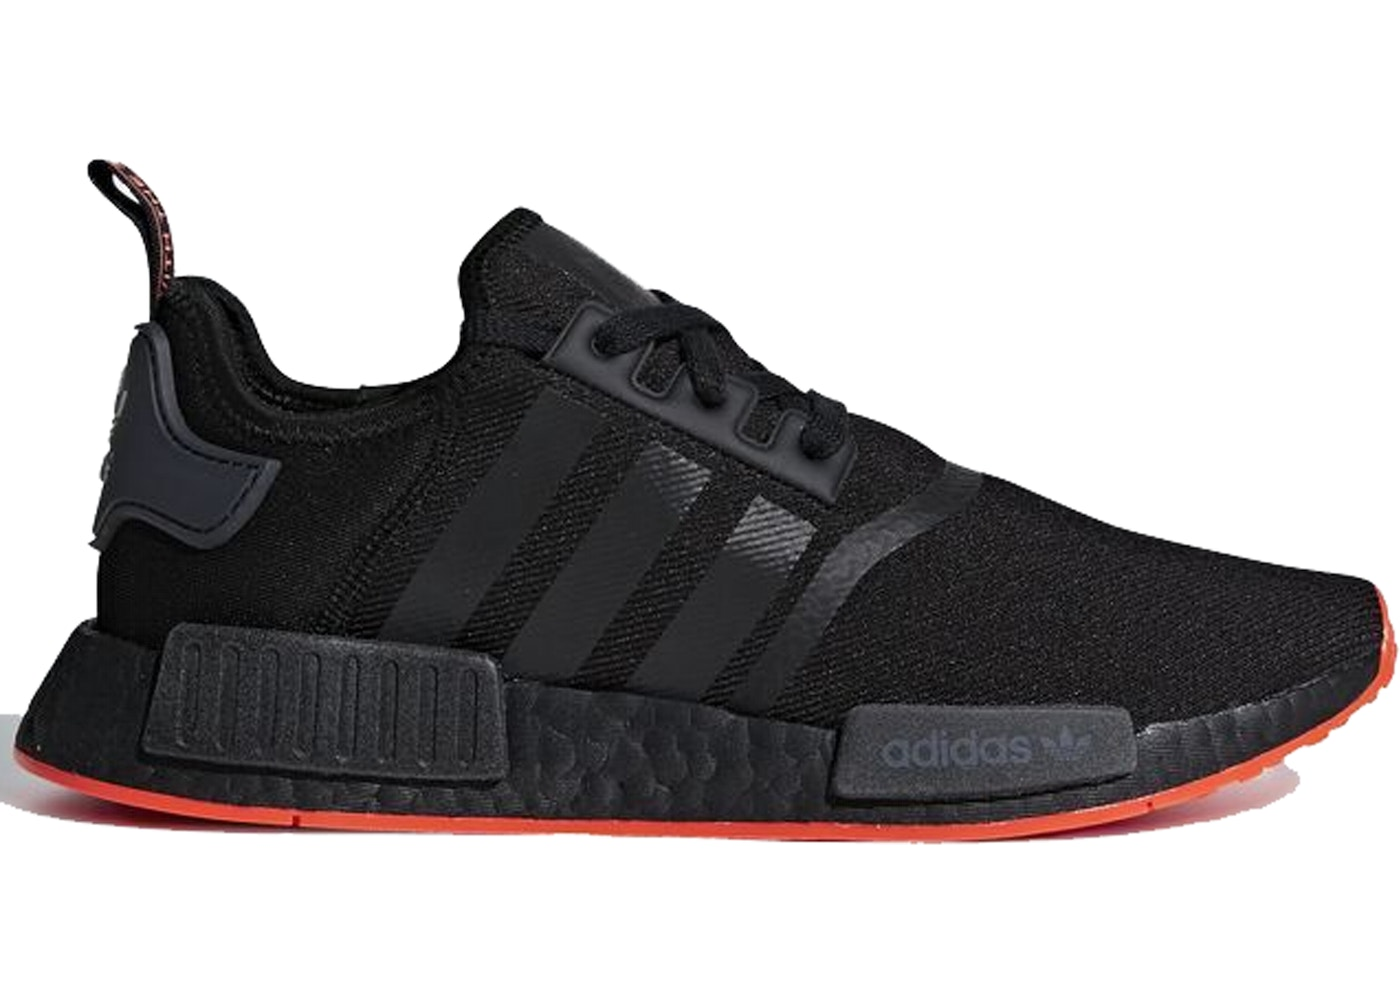 super popular f16e5 69e8b Sell. or Ask. Size: 11. View All Bids. adidas NMD R1 Core Black Solar Red